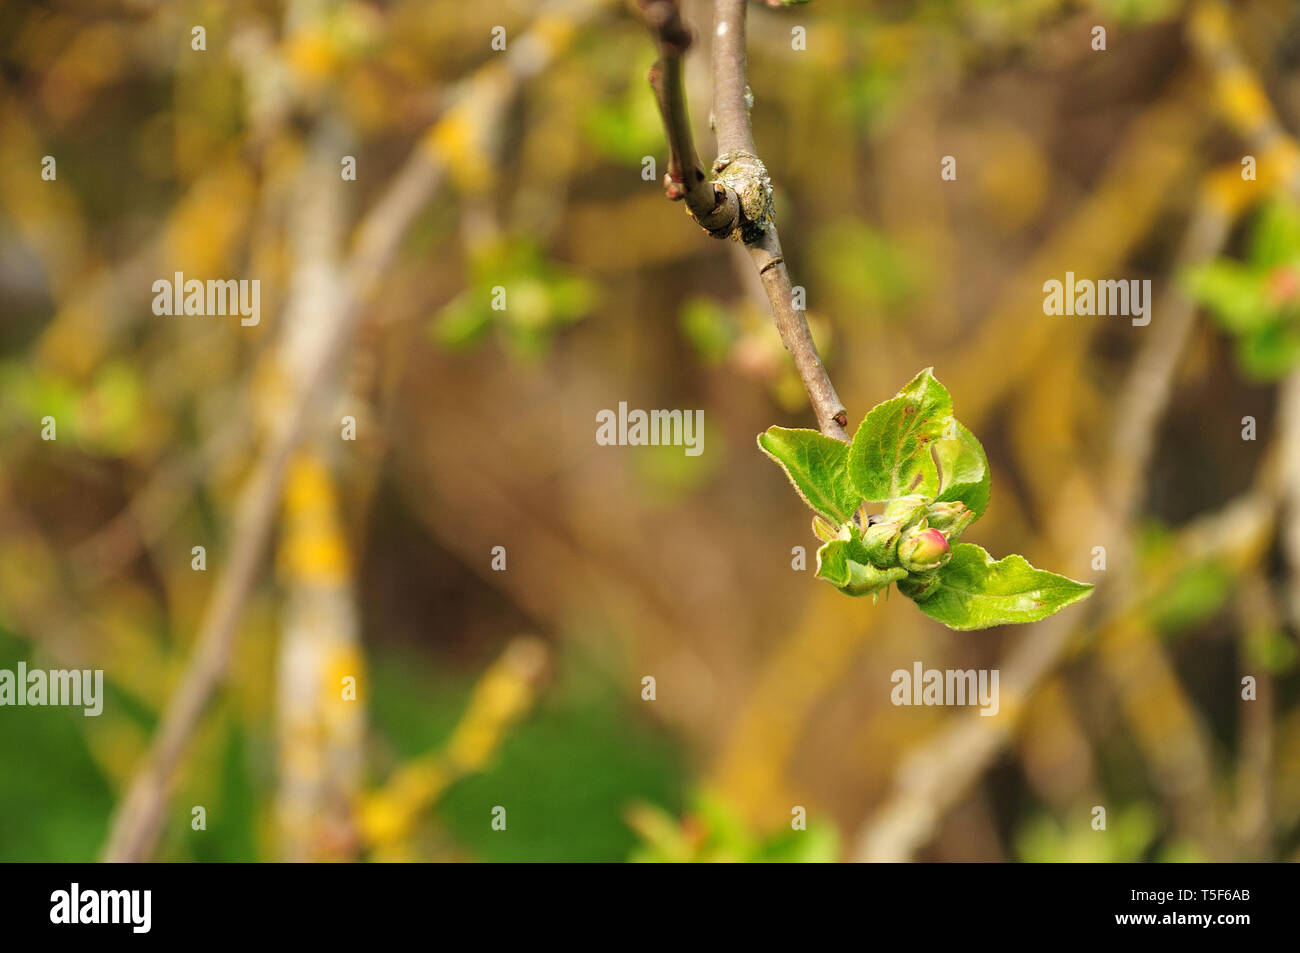 close-up of a pink bud of an apple tree surrounded by hairy leaves - Stock Image